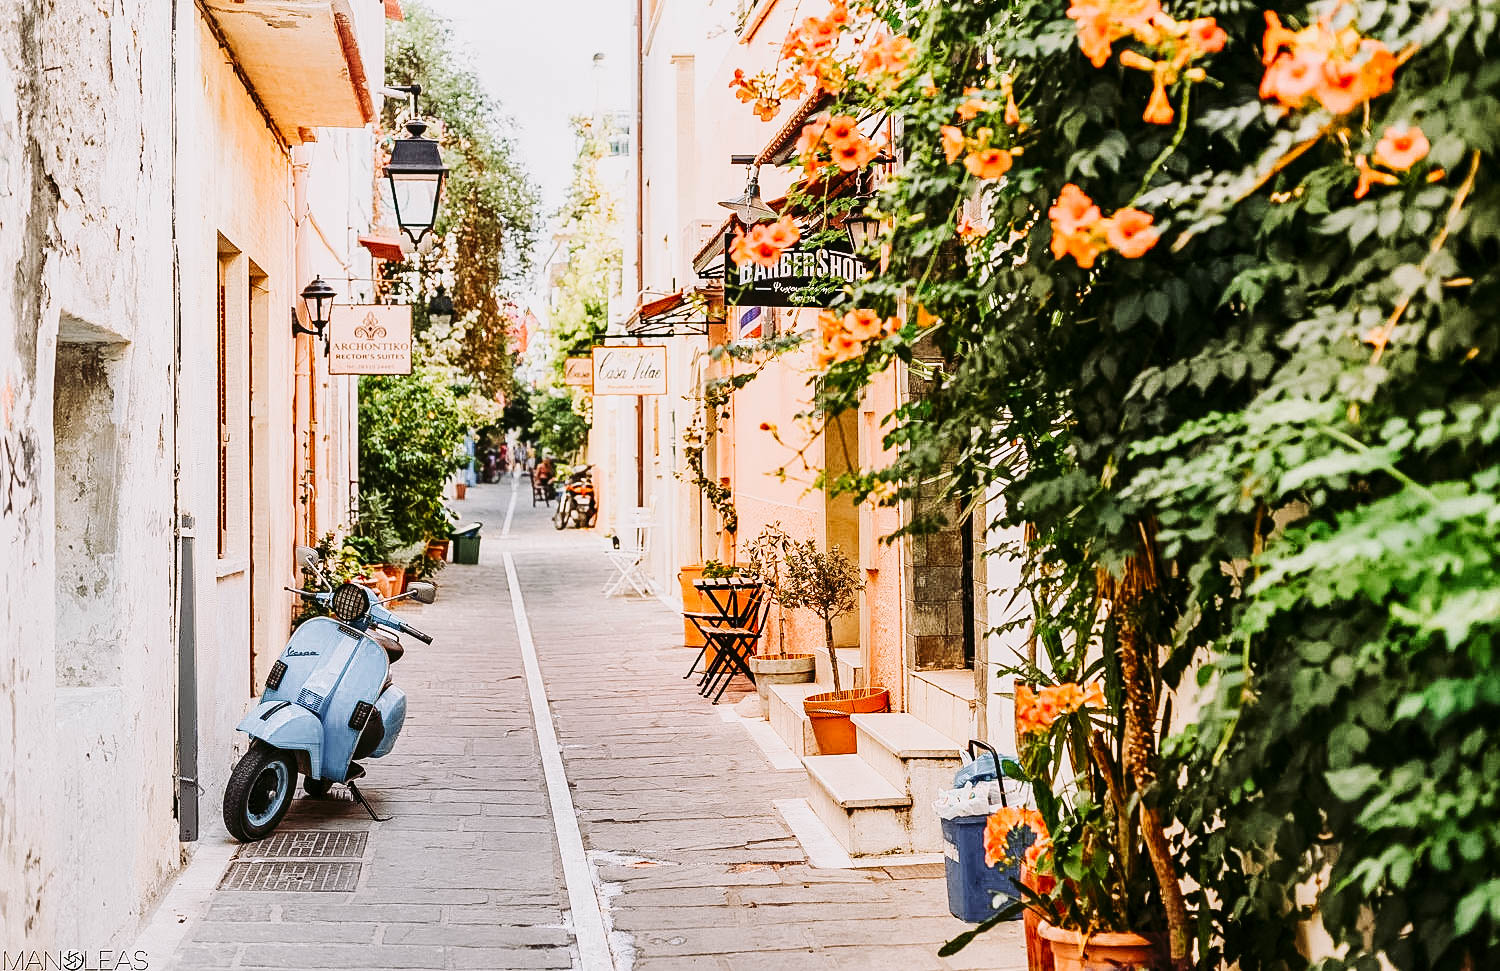 Streets of old rethymno